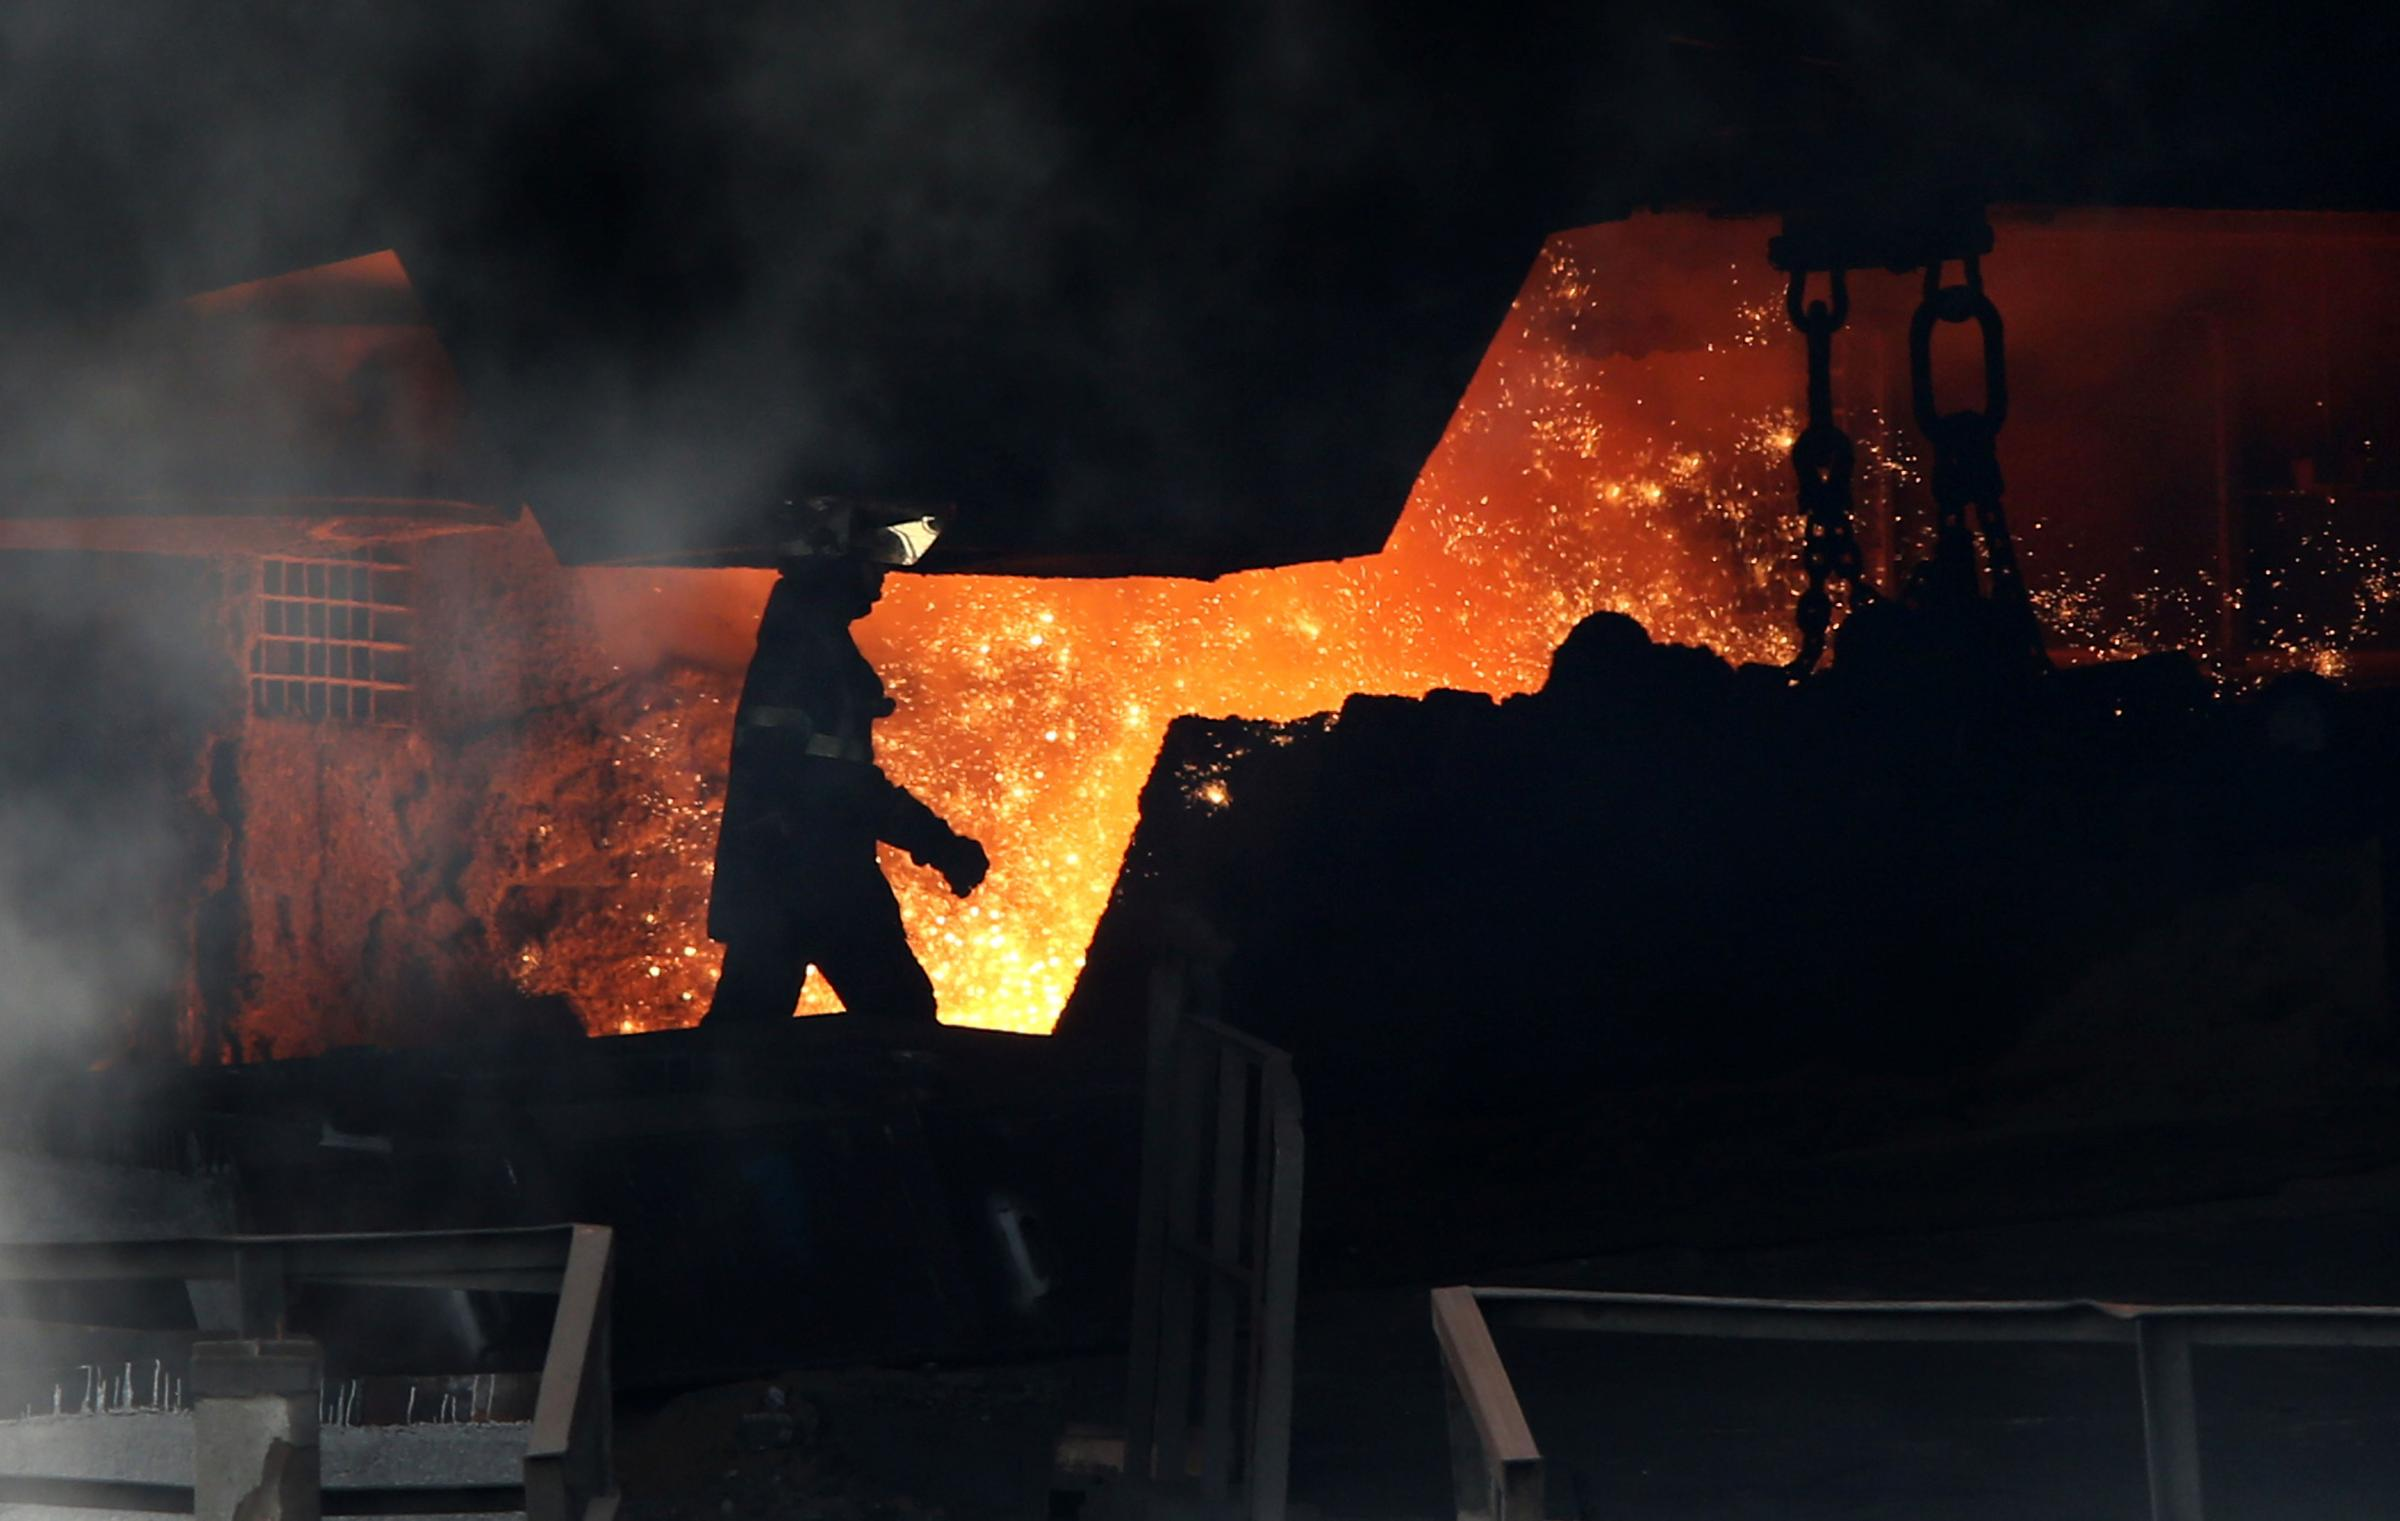 LOSS: A worker at SSI UK's former Redcar site on the day the company suspended steelmaking    Picture: TOM BANKS